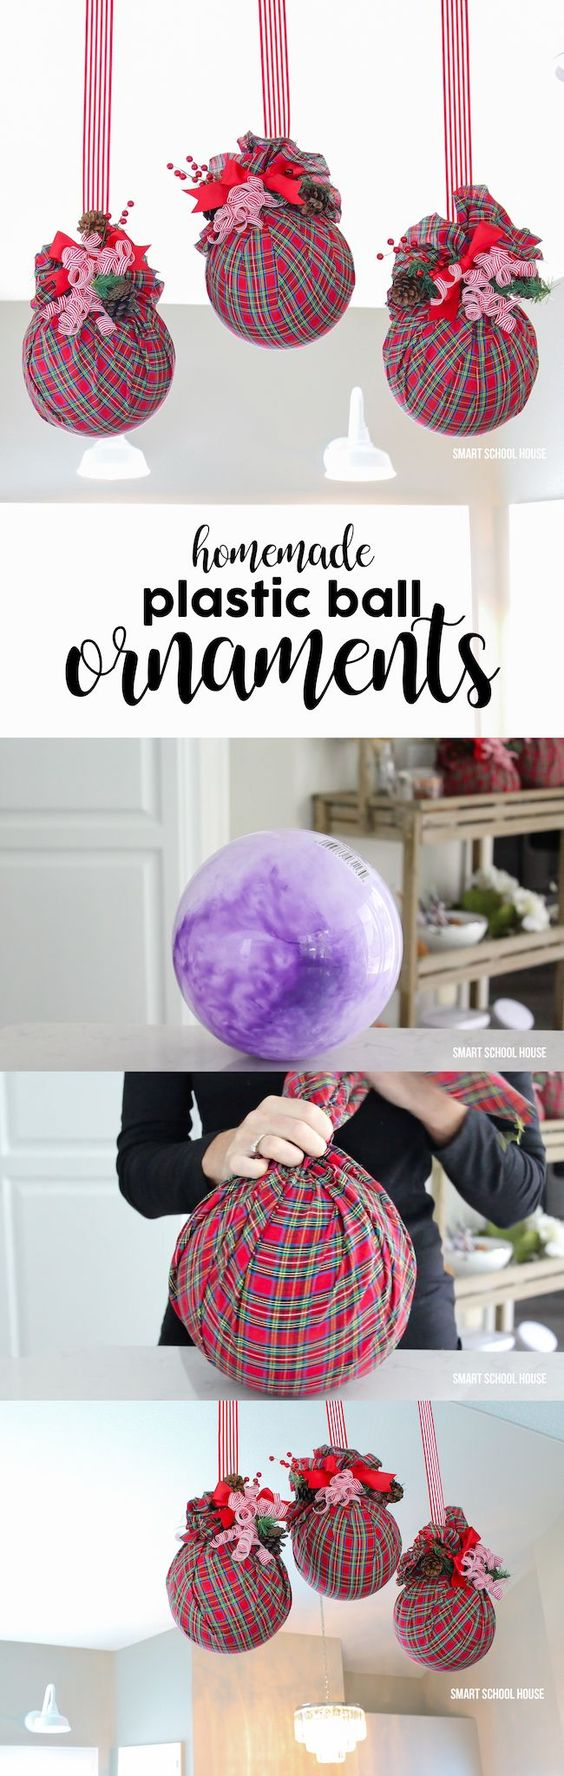 How to make Large Ornaments